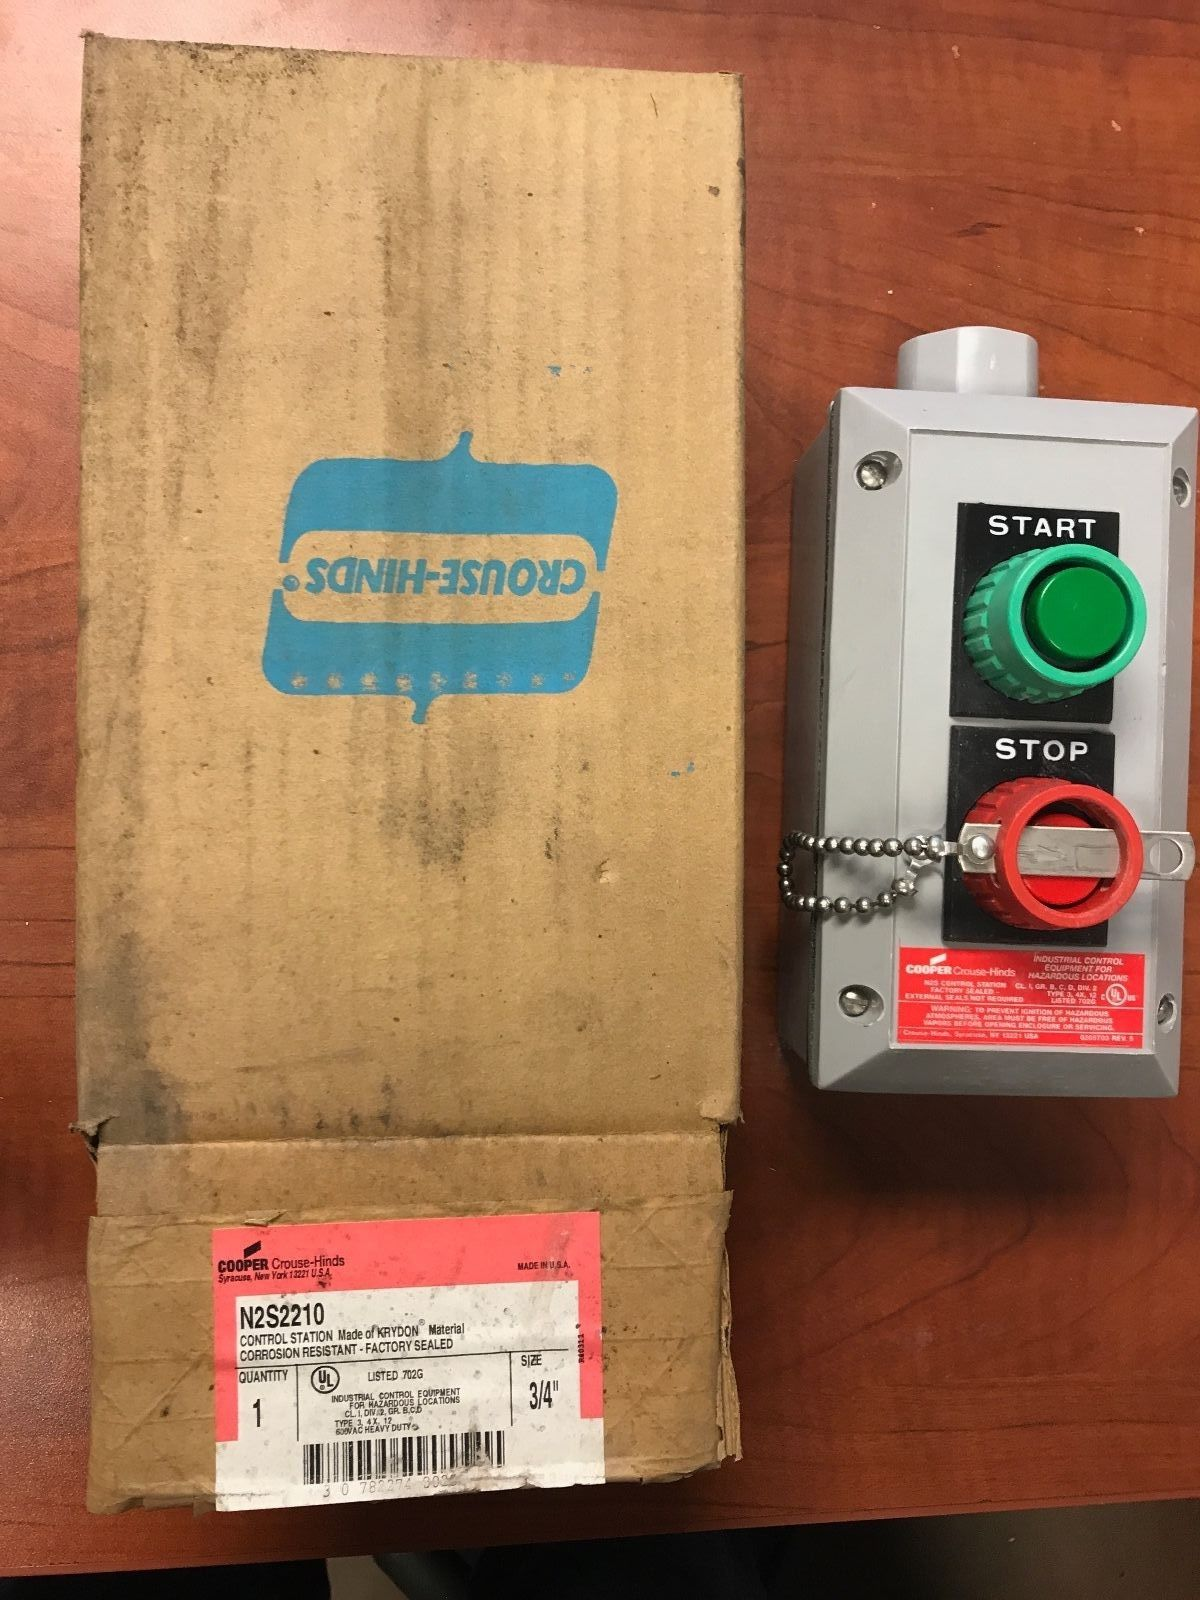 N2s2210 crouse hinds krydon start stop pushbutton for Class 1 div 2 motor disconnect switch